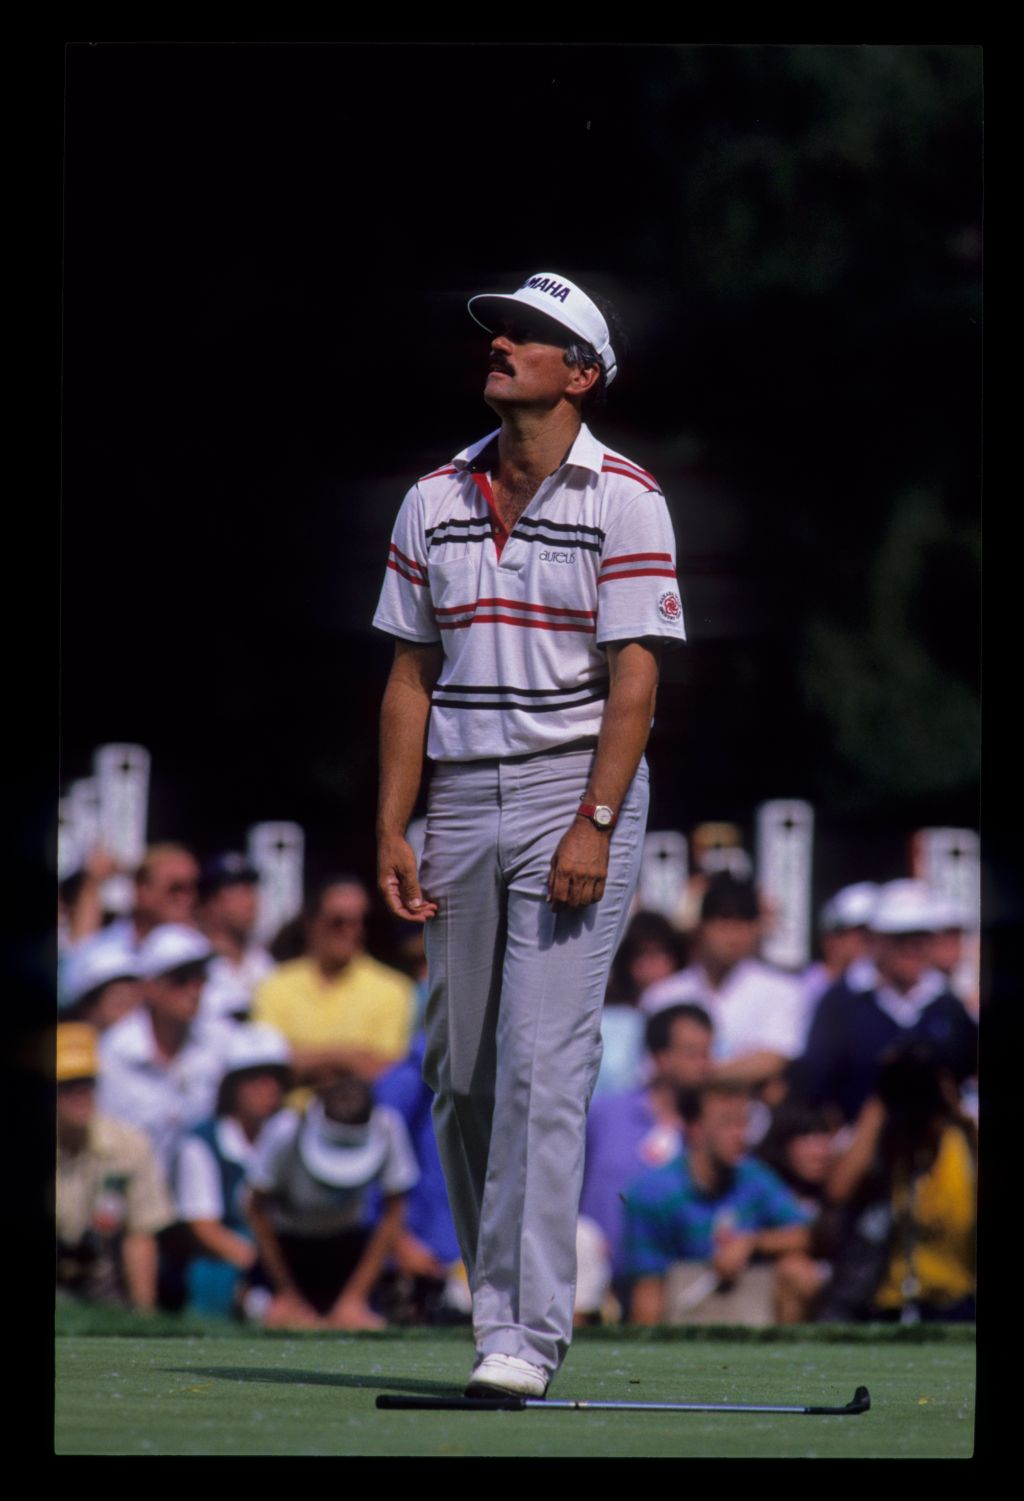 Scott Simpson dropping his putter on the green during the 1989 US Open